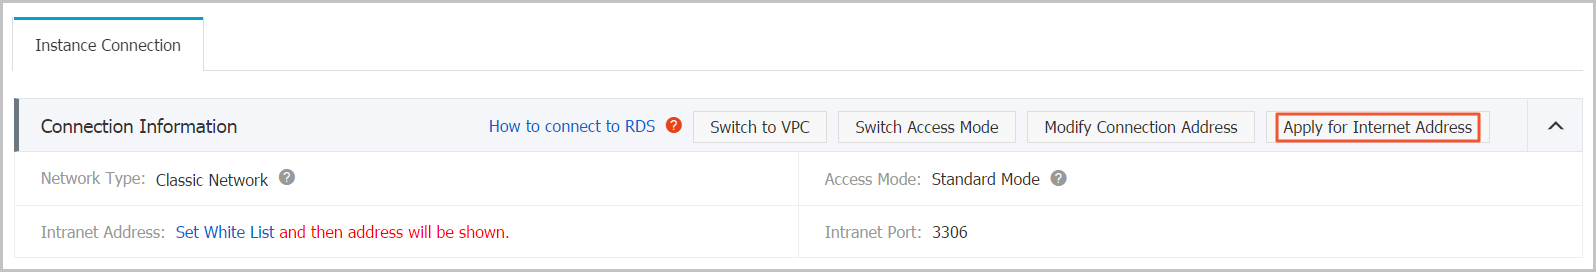 Button of Apply for Internet Address